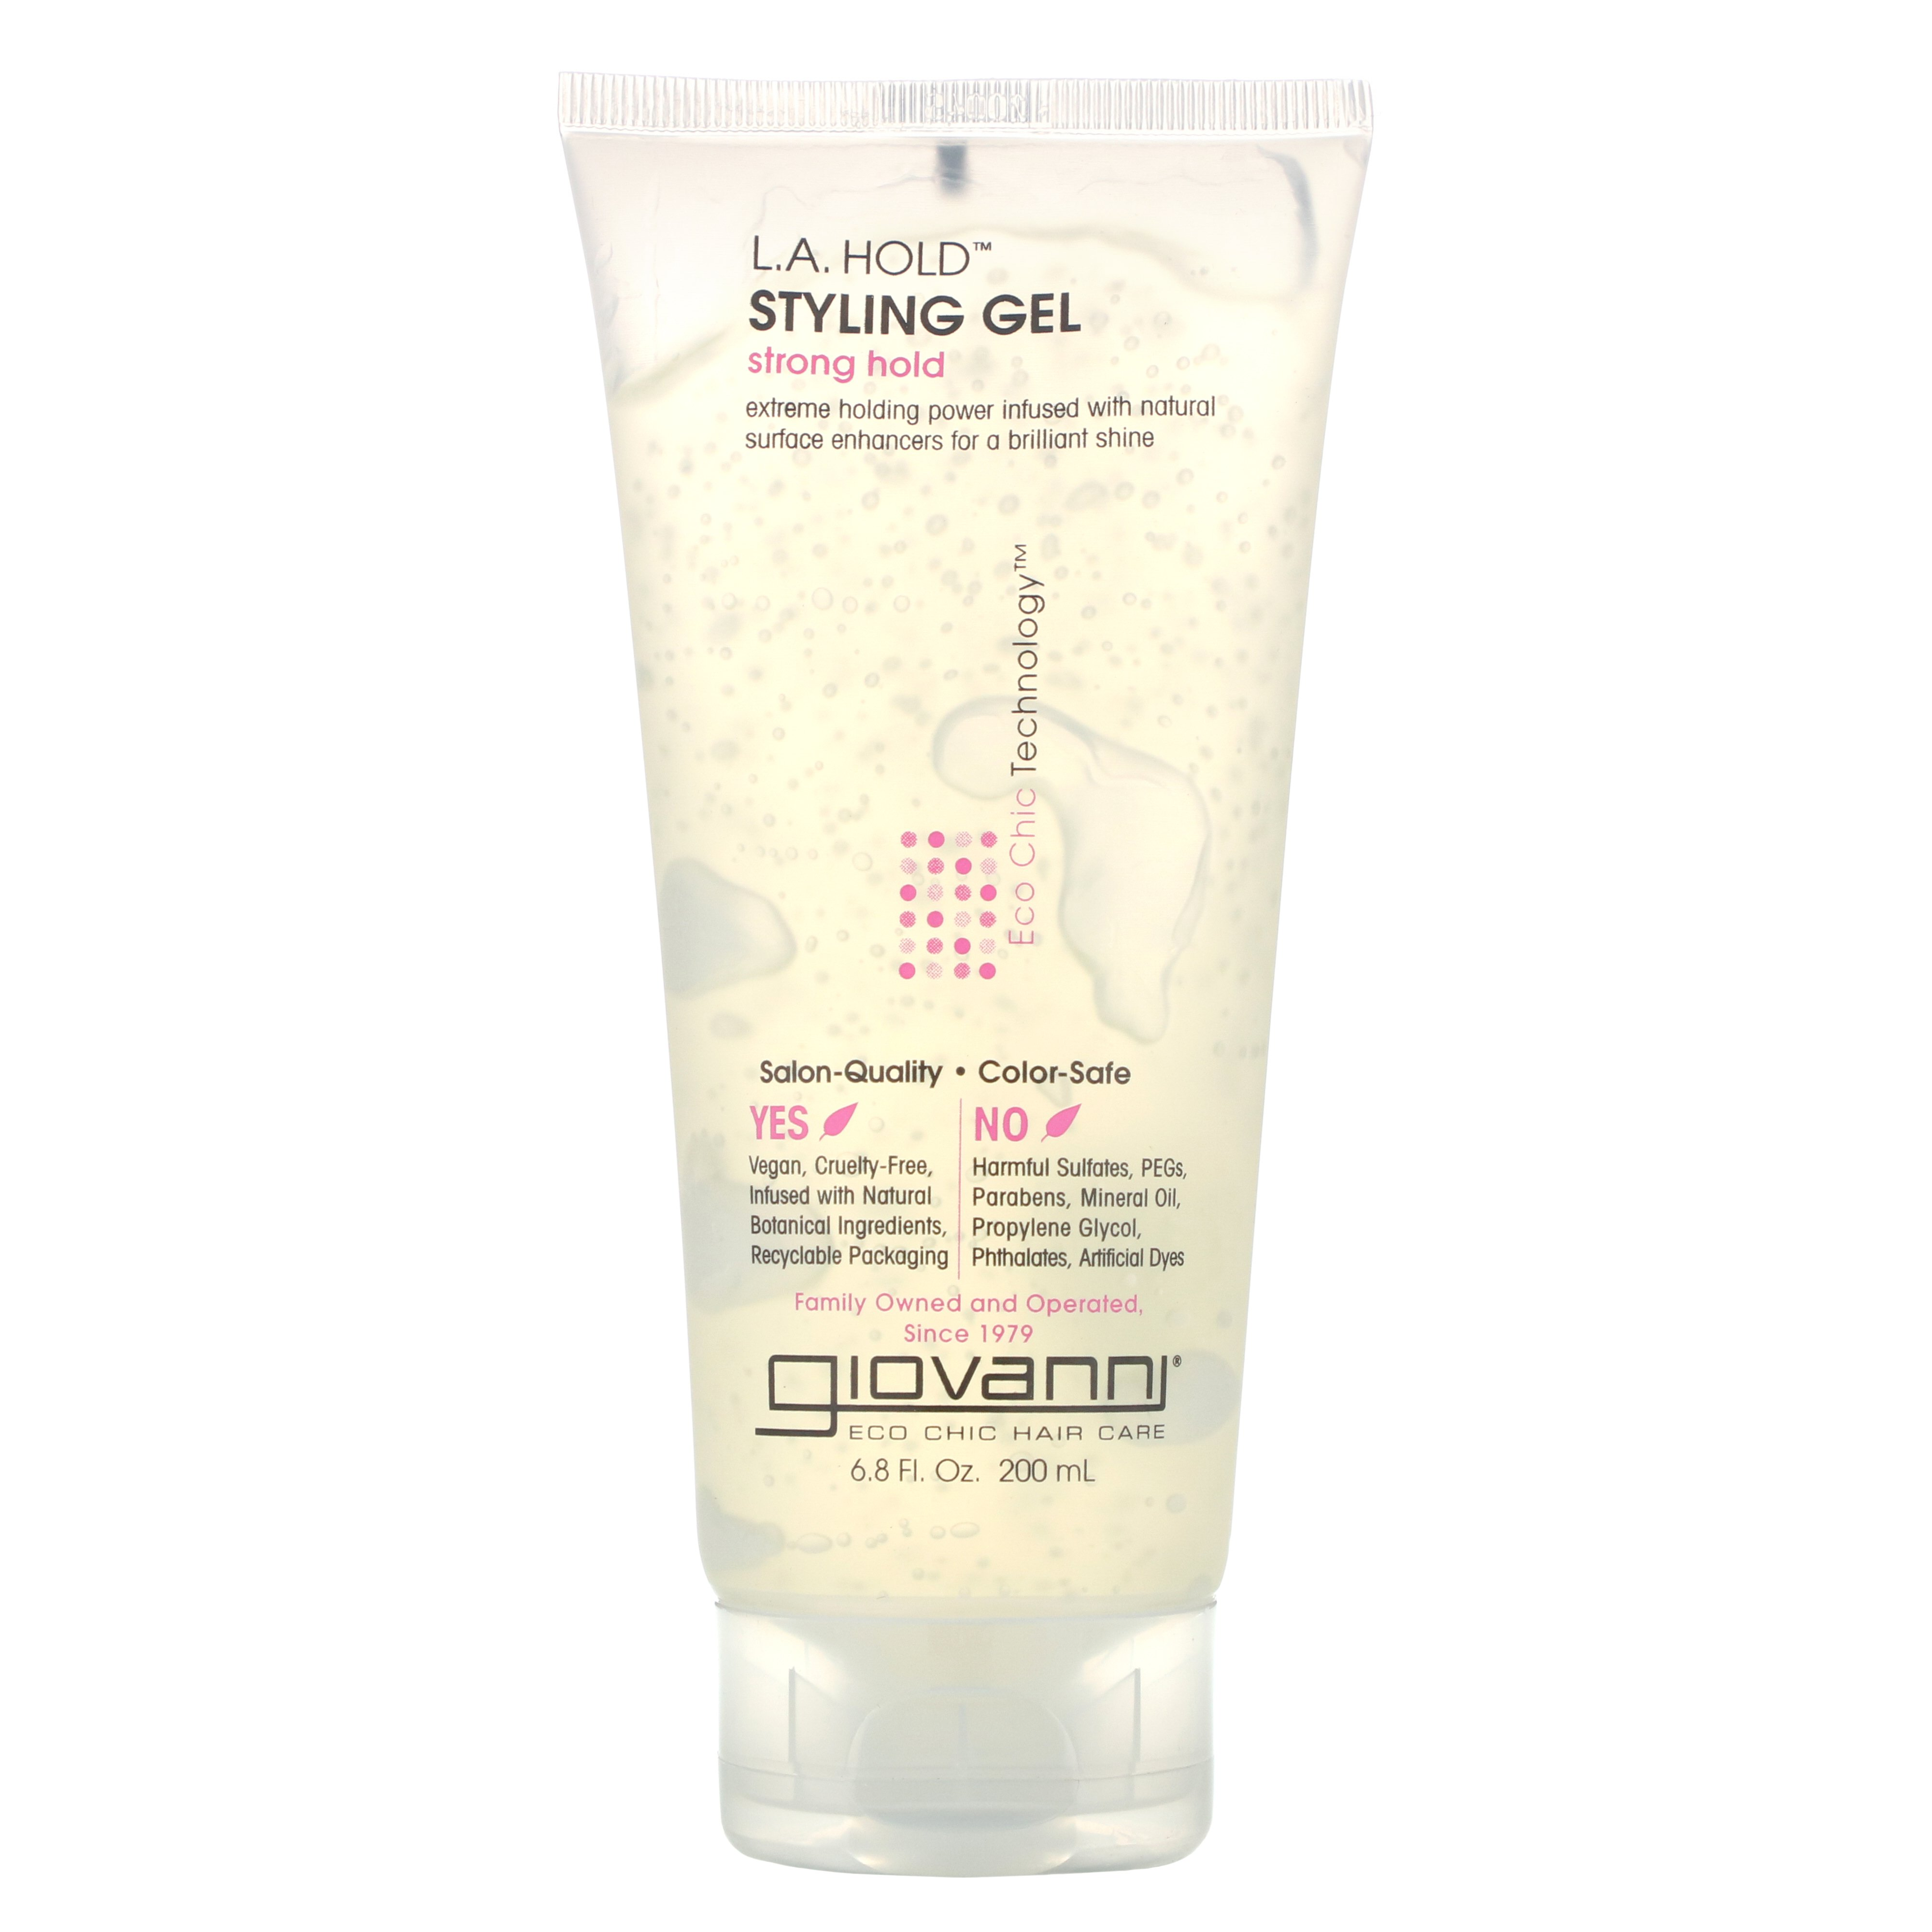 Giovanni L A Natural Styling Gel Strong Hold 6 8 Fl Oz 200 Ml Iherb